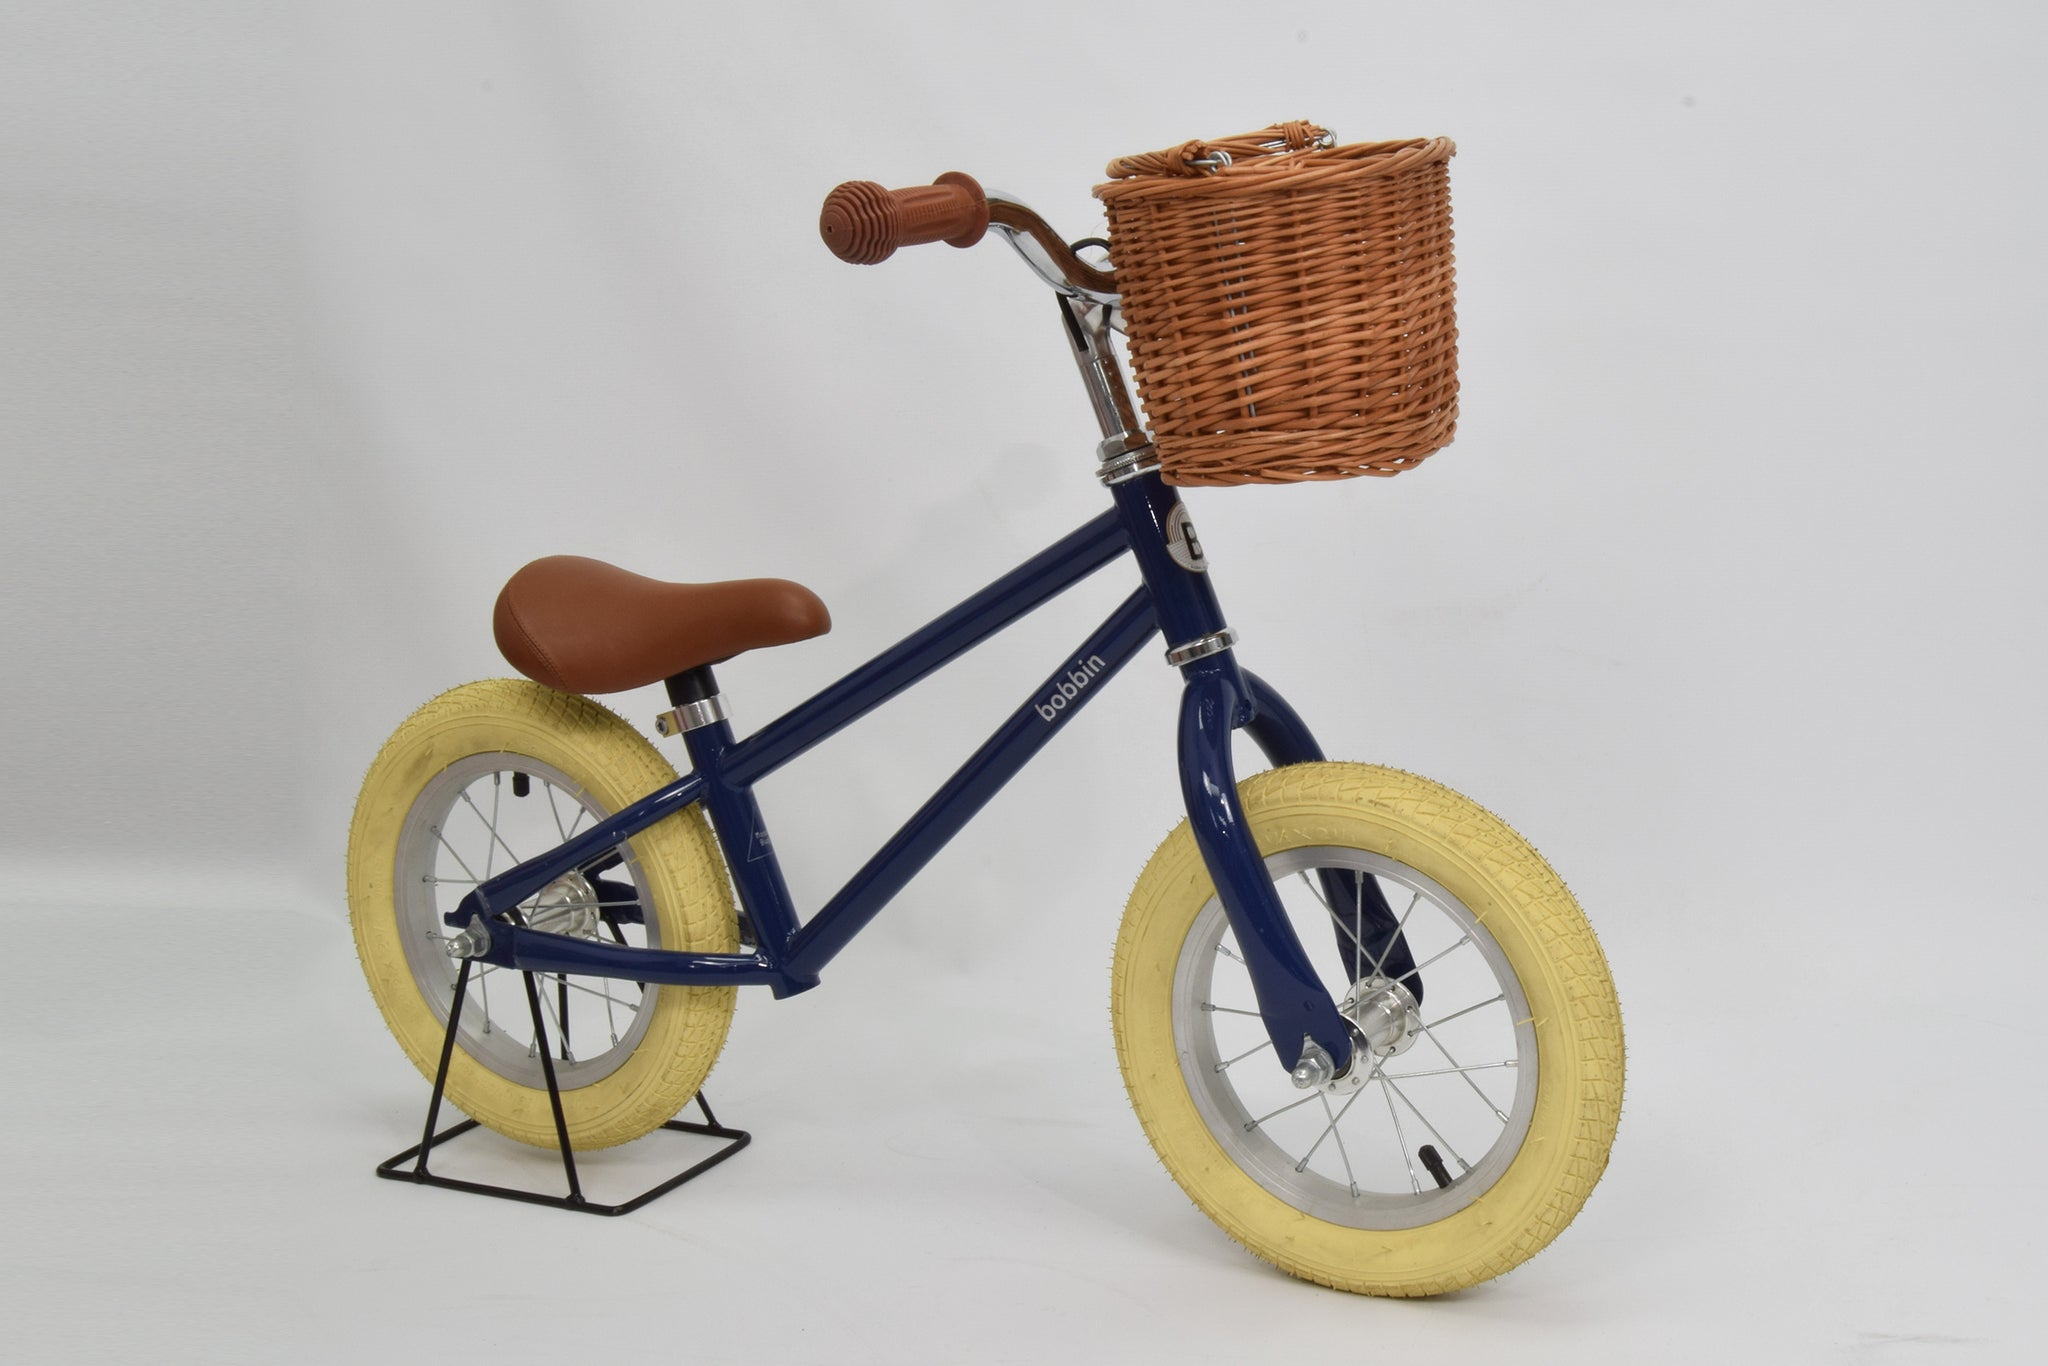 Bobbin bicycle Lottie Kids Basket small size